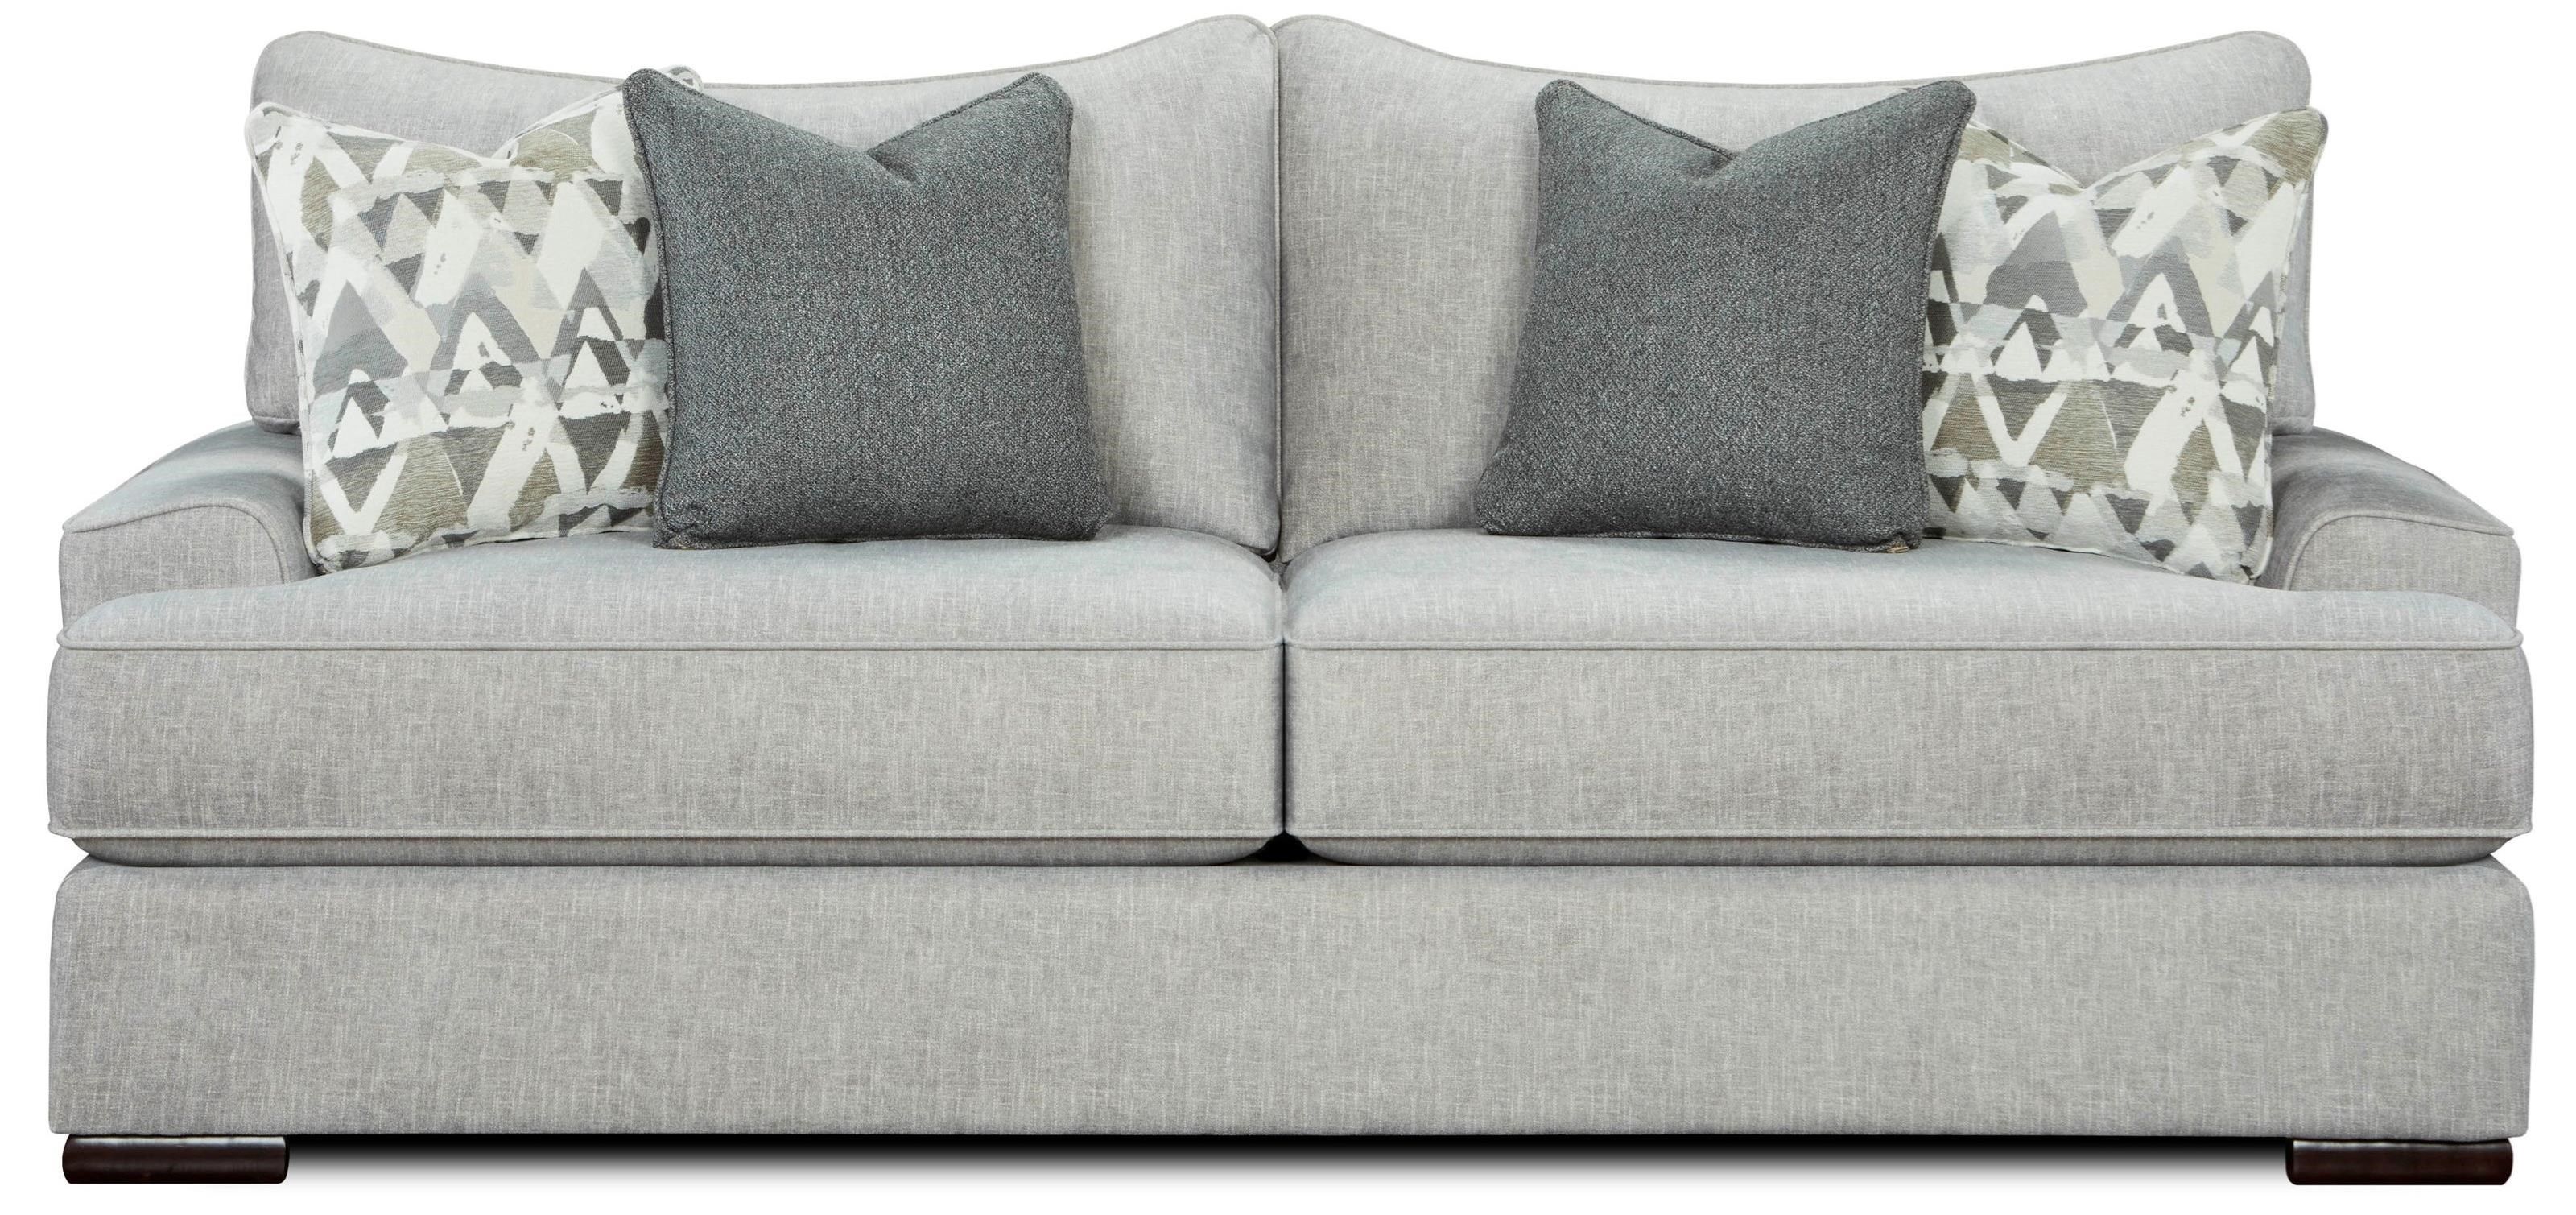 2010 Sofa by Fusion Furniture at Story & Lee Furniture